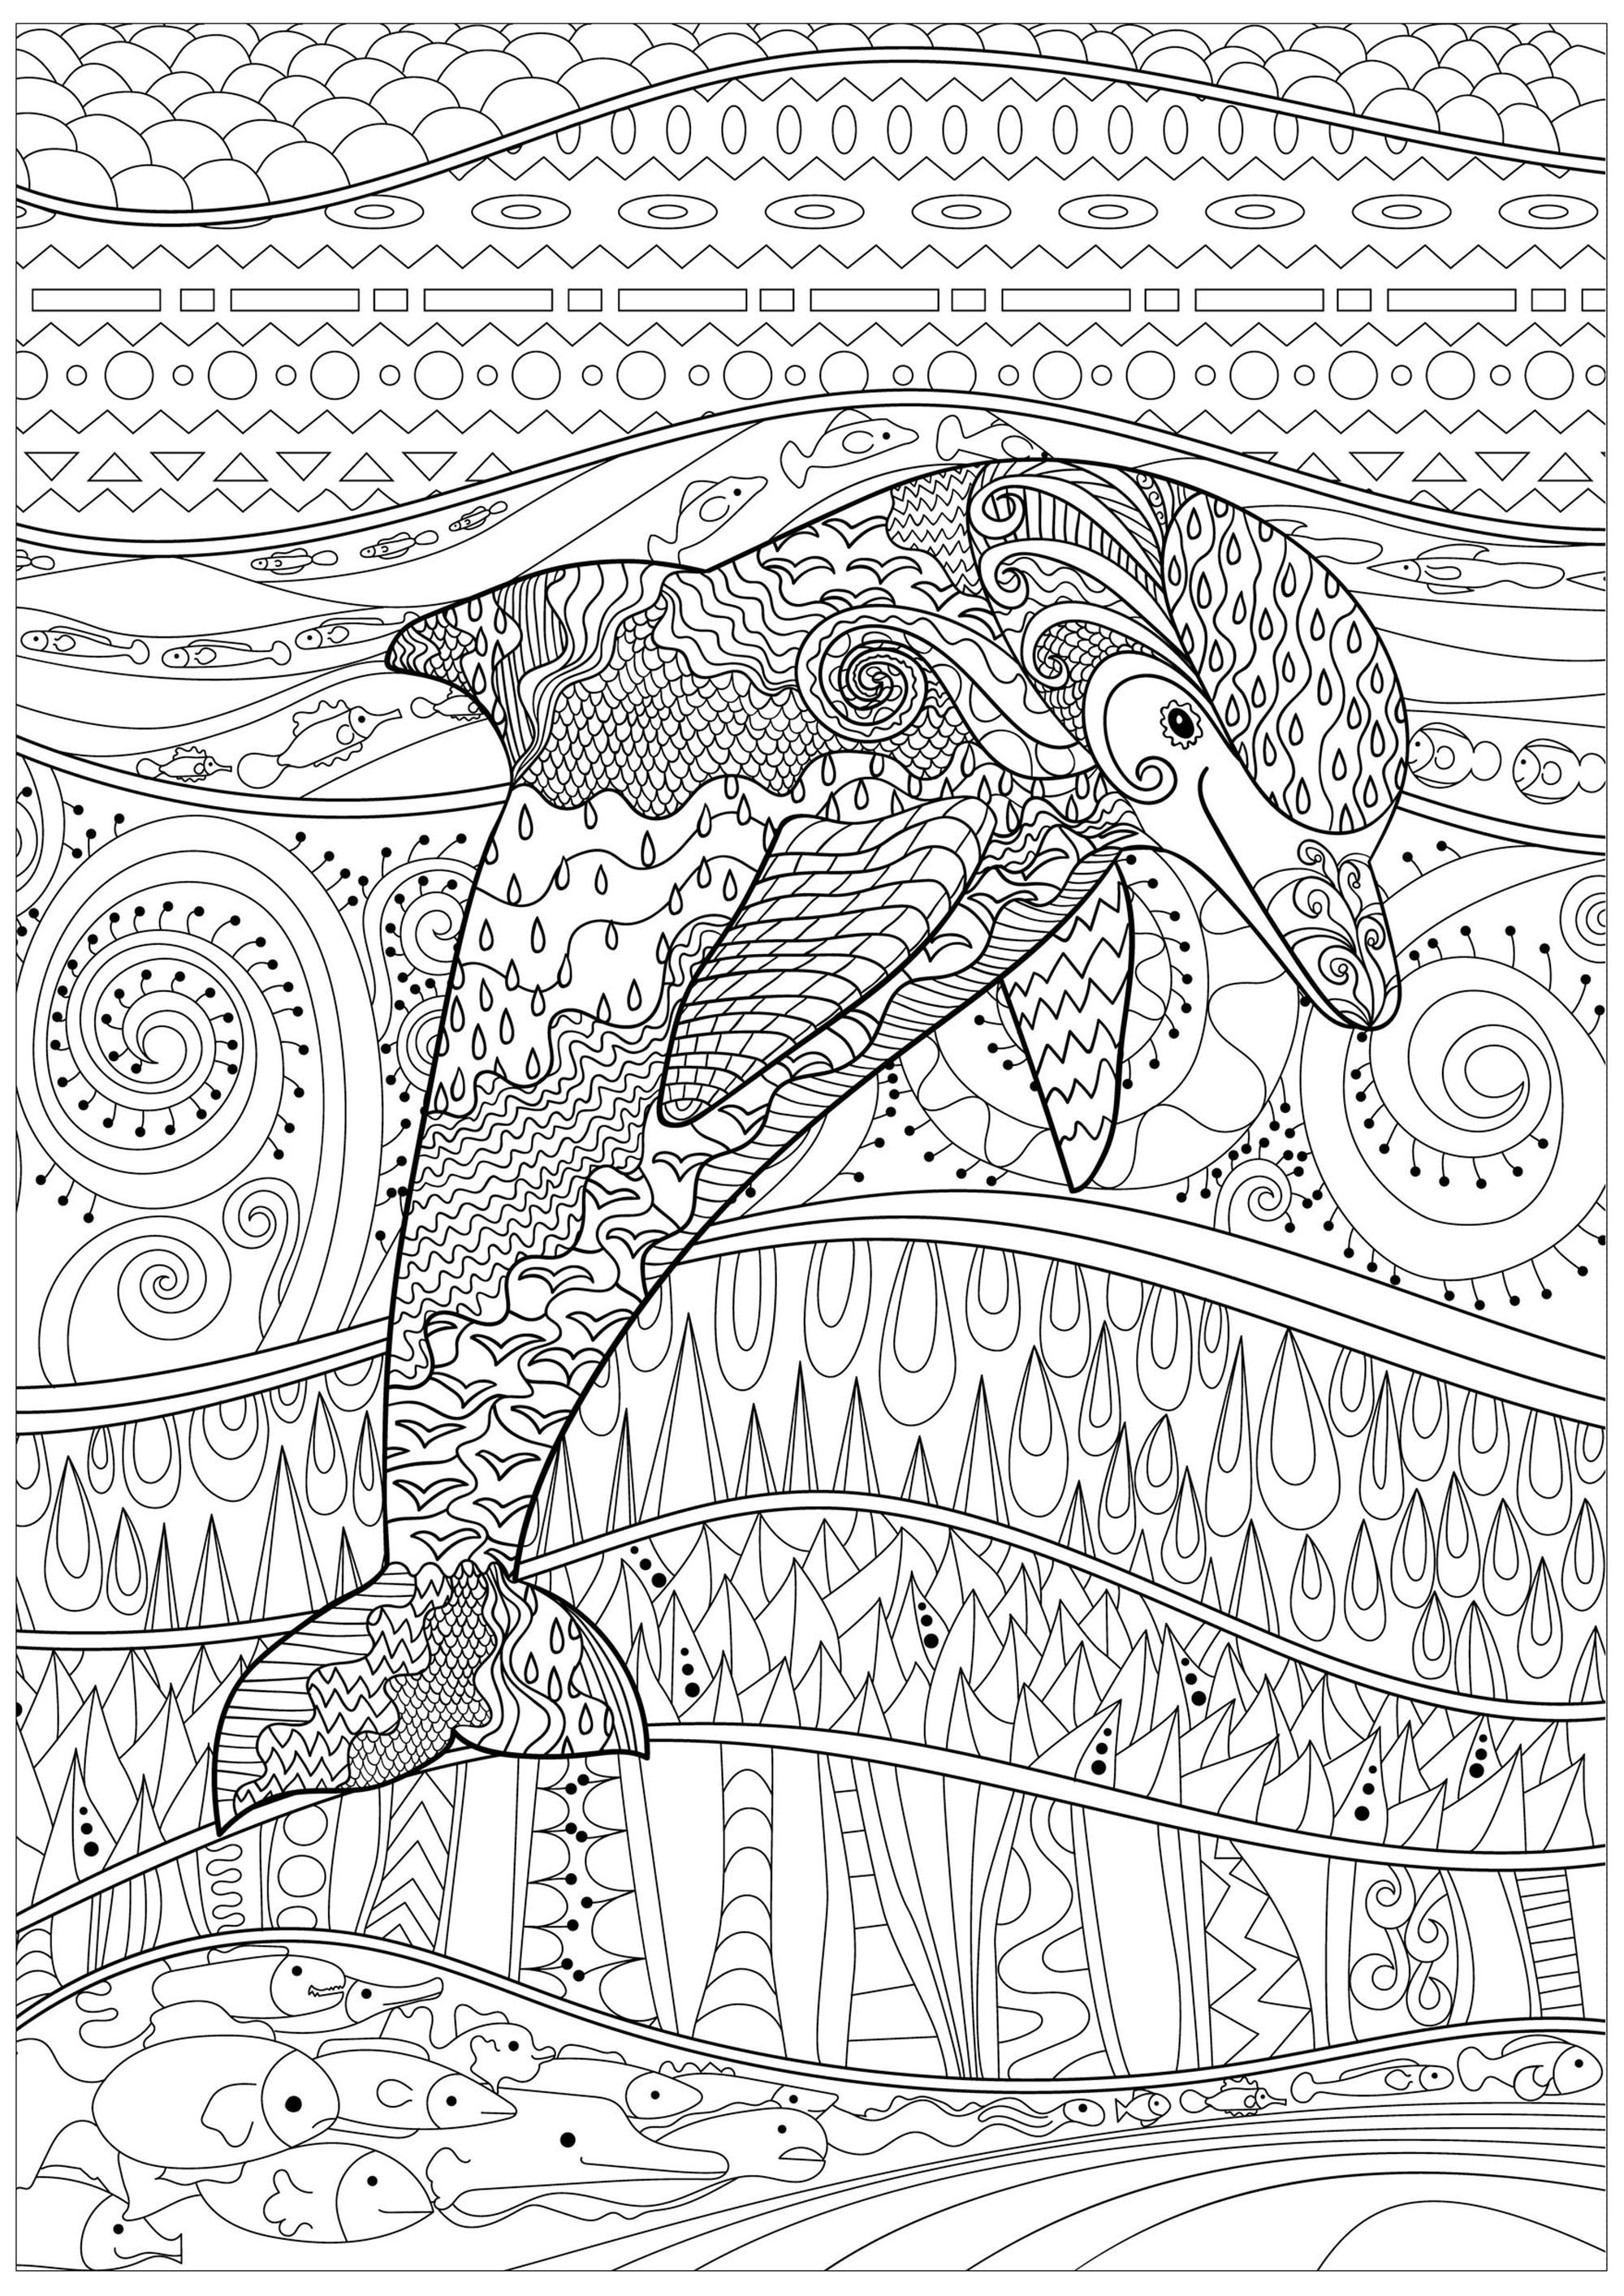 Rayonnant Dauphin Dauphins Coloriages Difficiles Pour